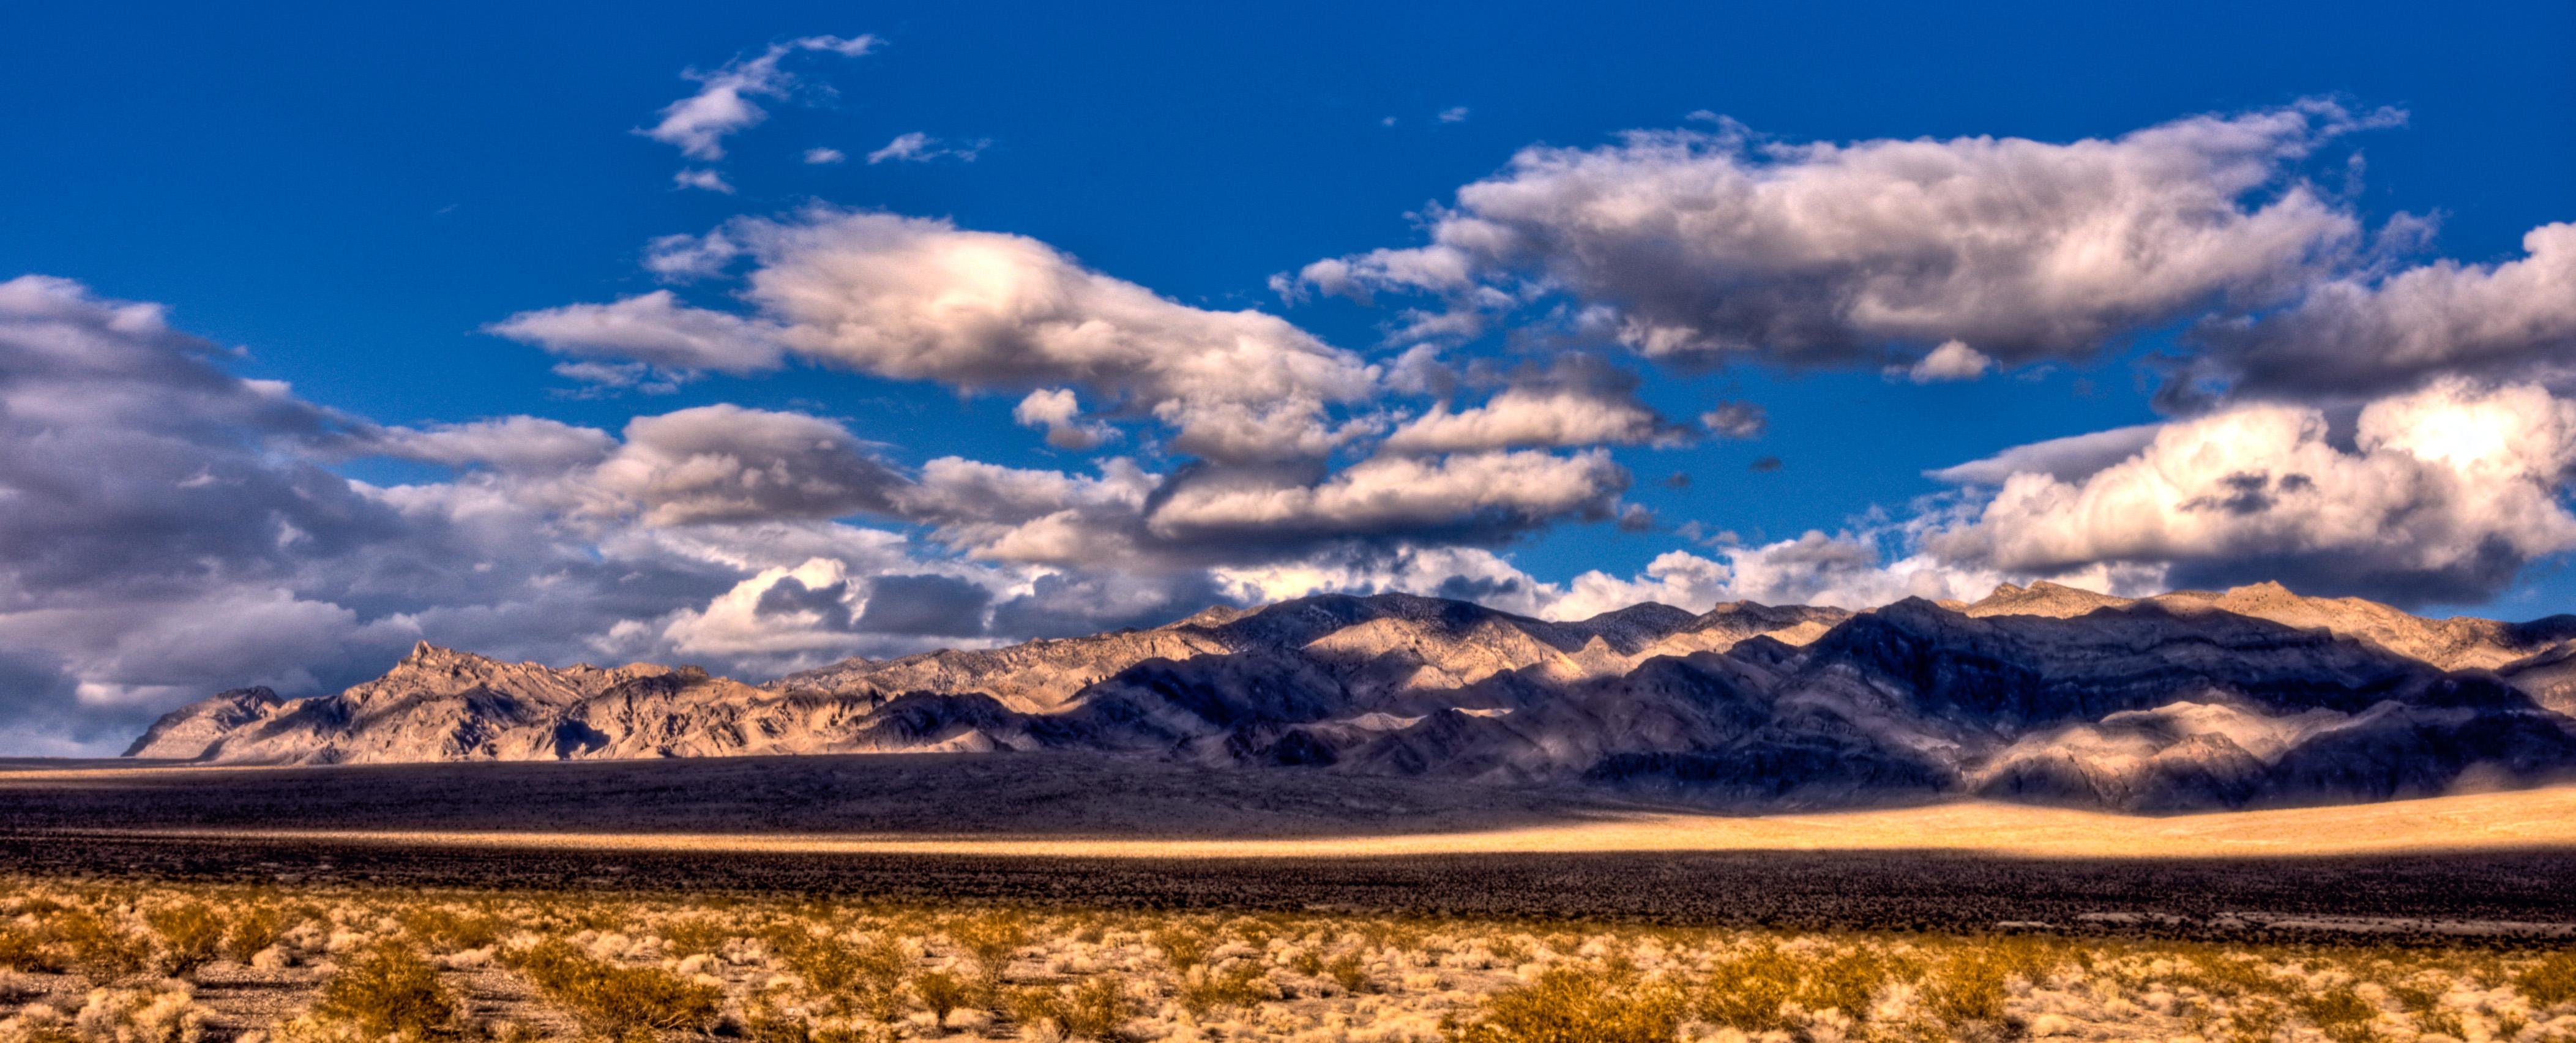 Desert National Wildlife Refuge (Courtesy: Friends of Nevada Wilderness)